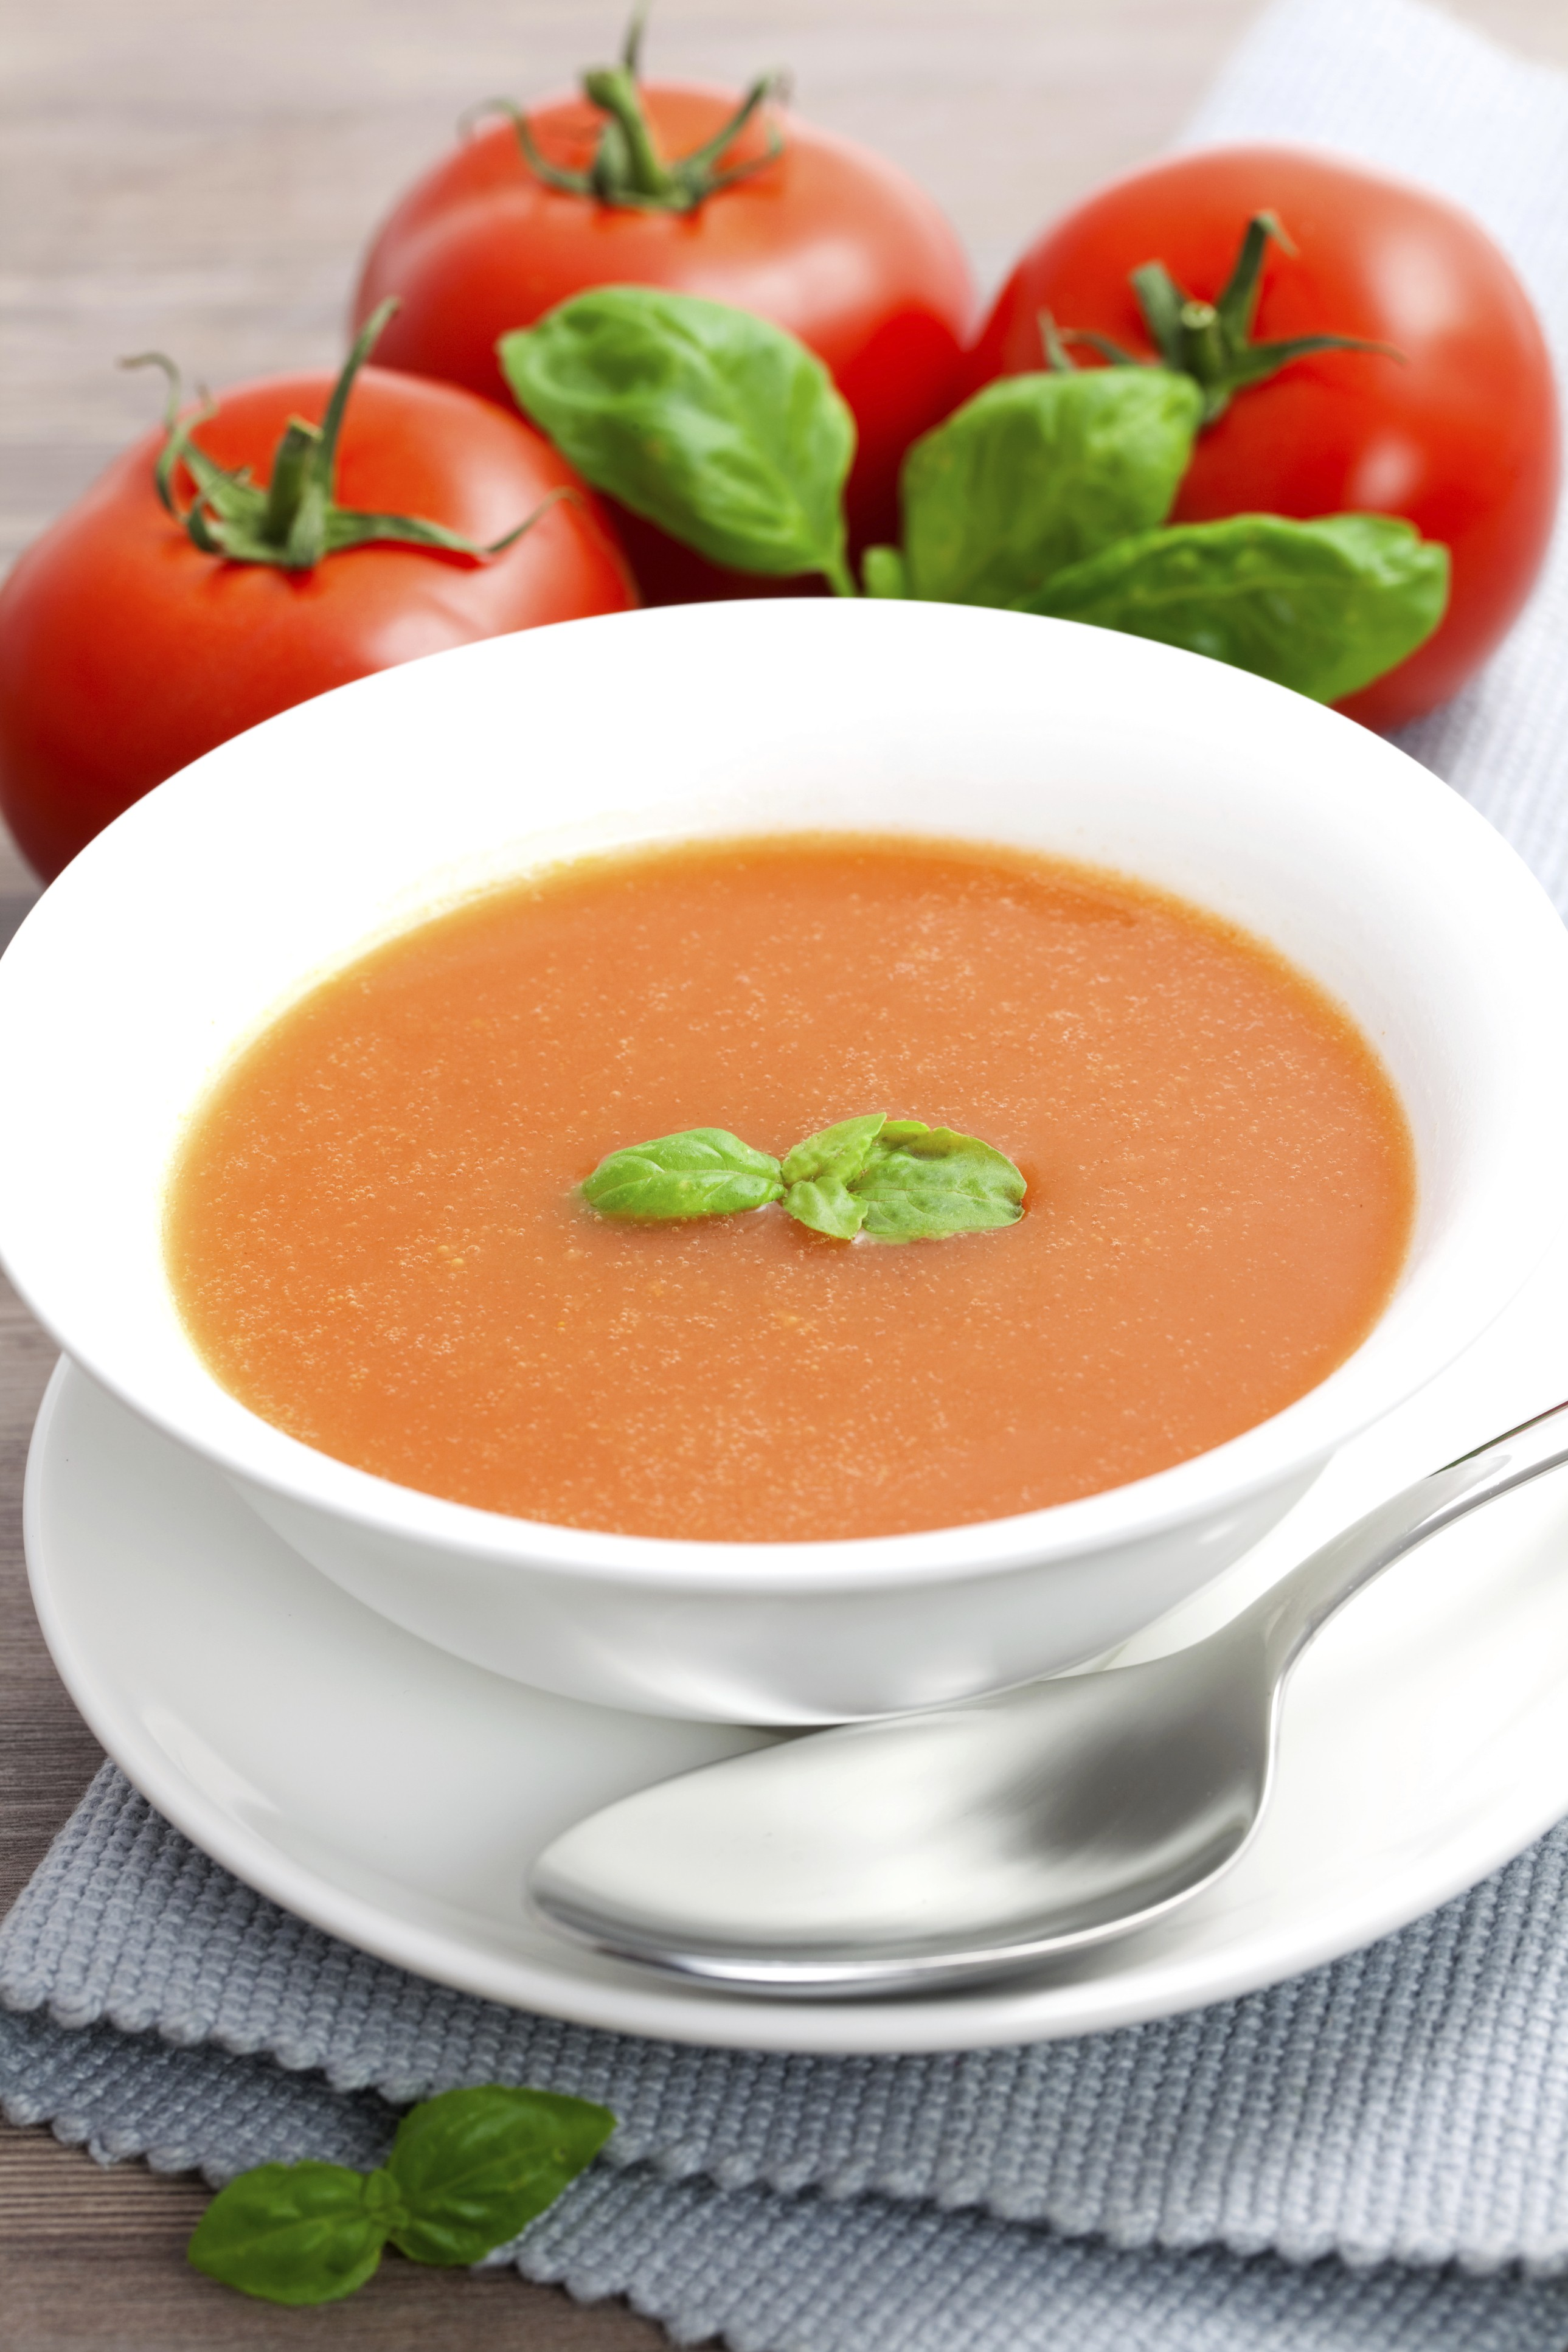 how to make tomato soup glorious soup recipes. Black Bedroom Furniture Sets. Home Design Ideas